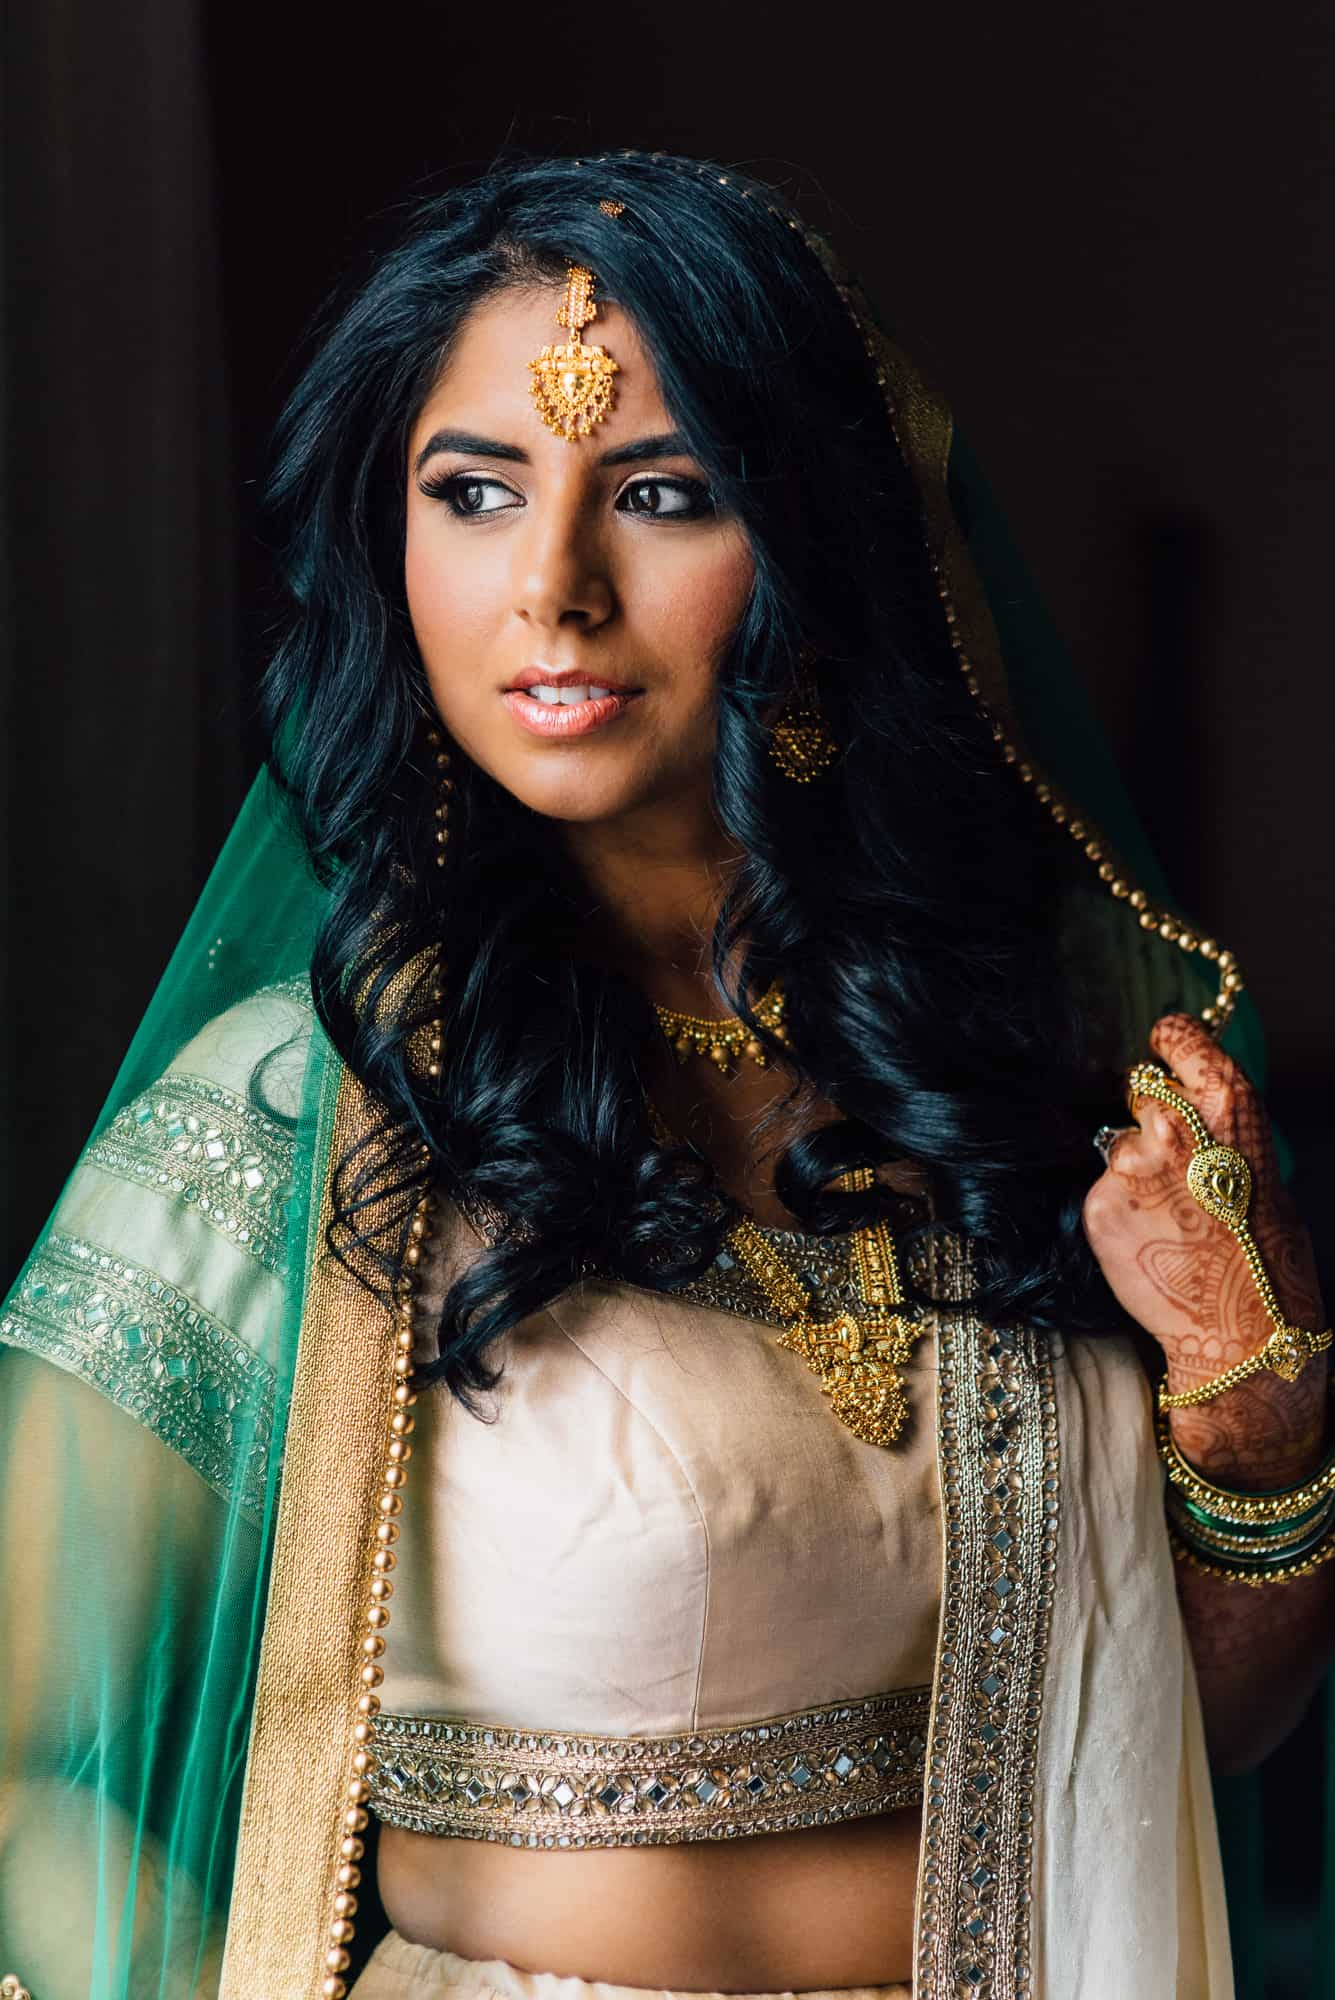 bridal photos, bride in traditional indian dress looking away from camera